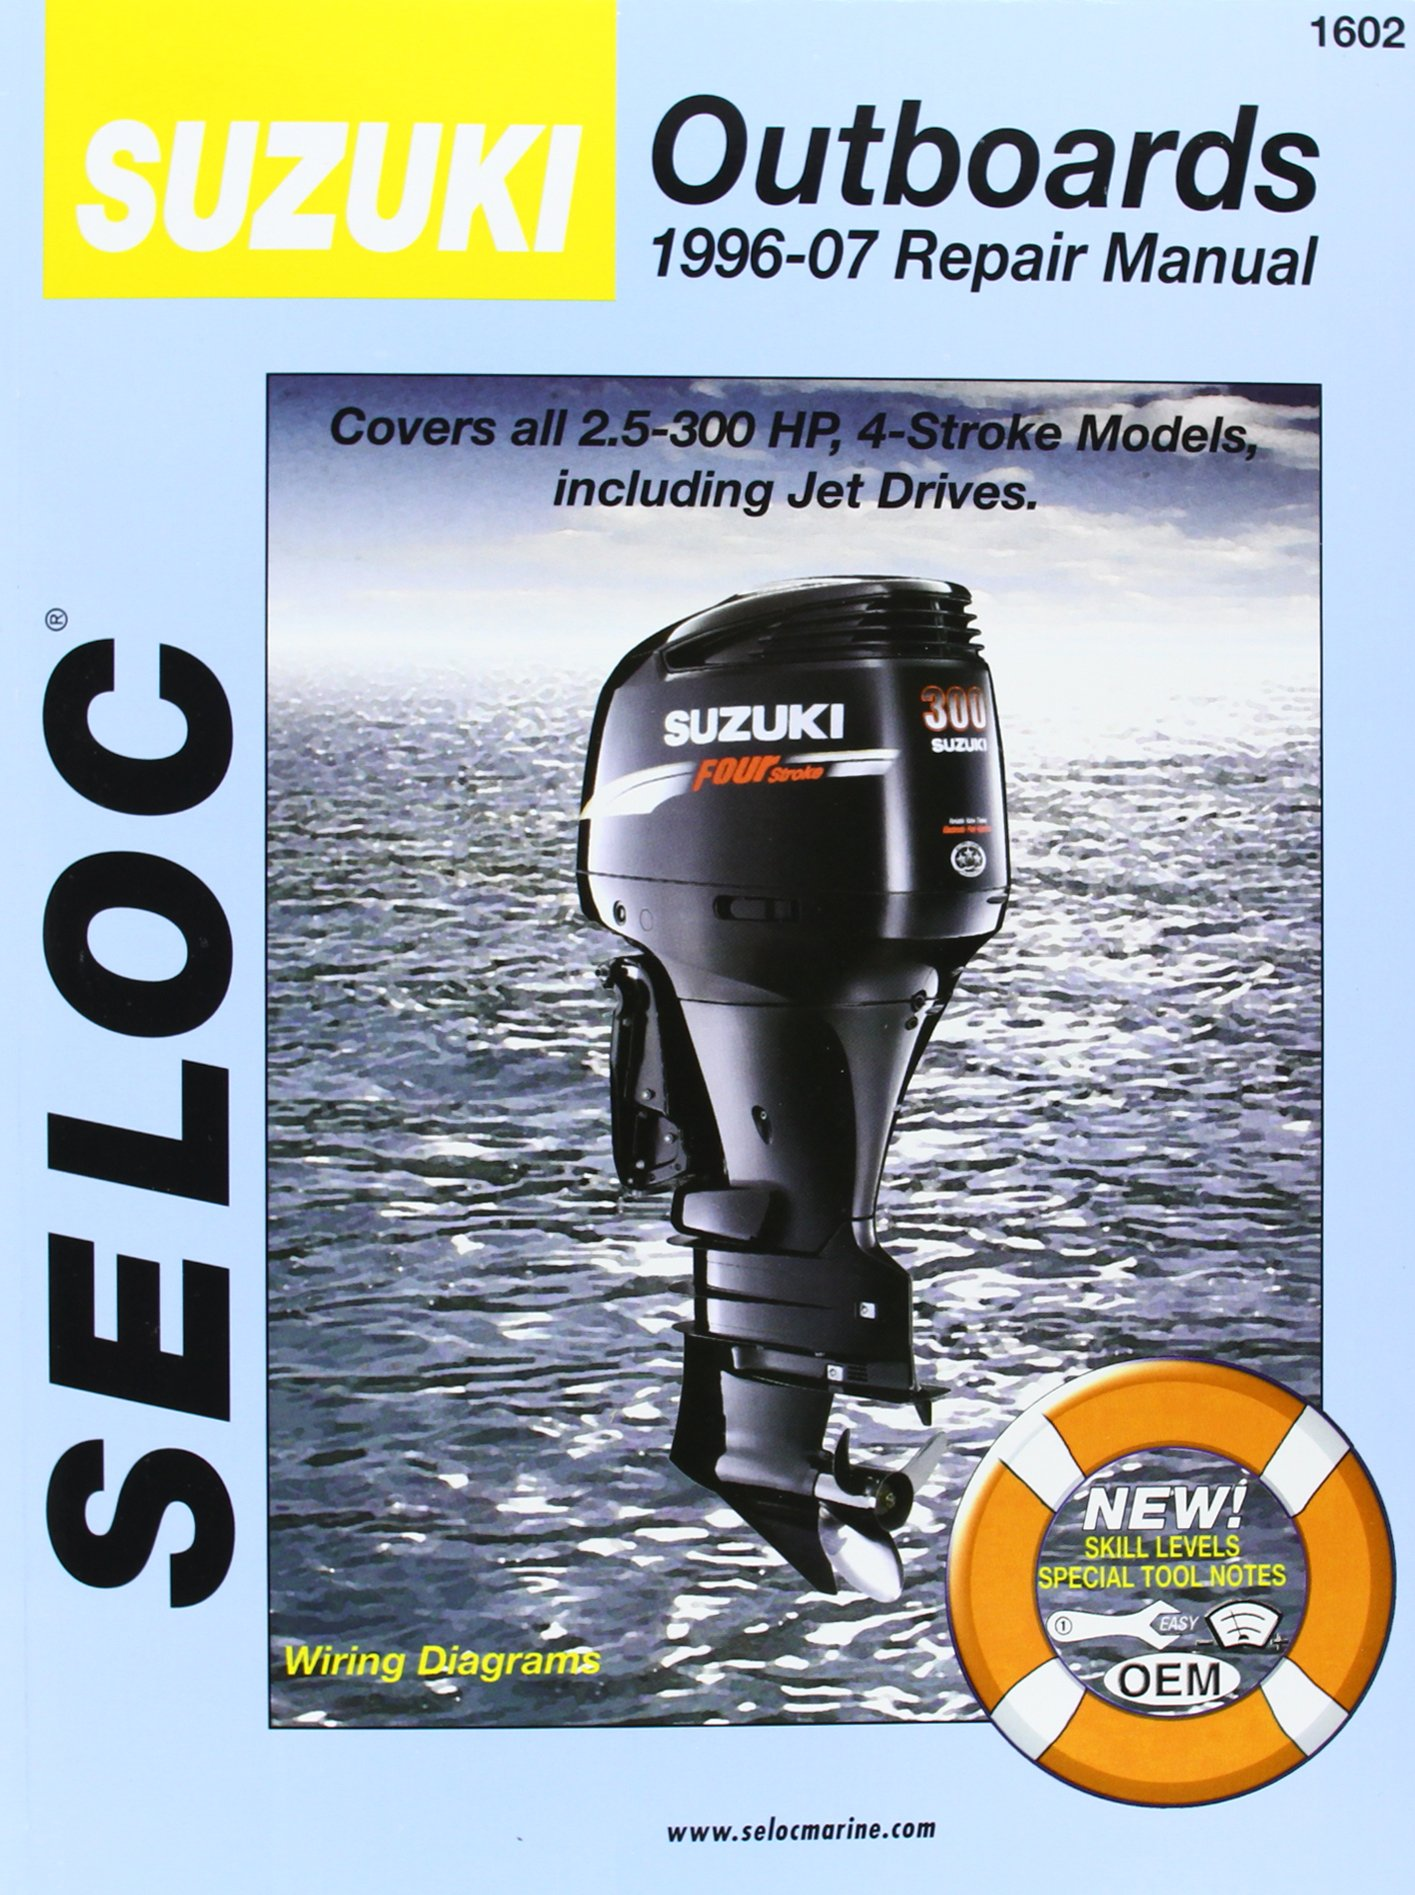 Suzuki Outboards 1996-07 Repair Manual: Covers all 2.5-300 Horsepower, 4-Stroke Models including Jet Drivers (SELOC Marine Manuals) by Brand: Delmar Pub